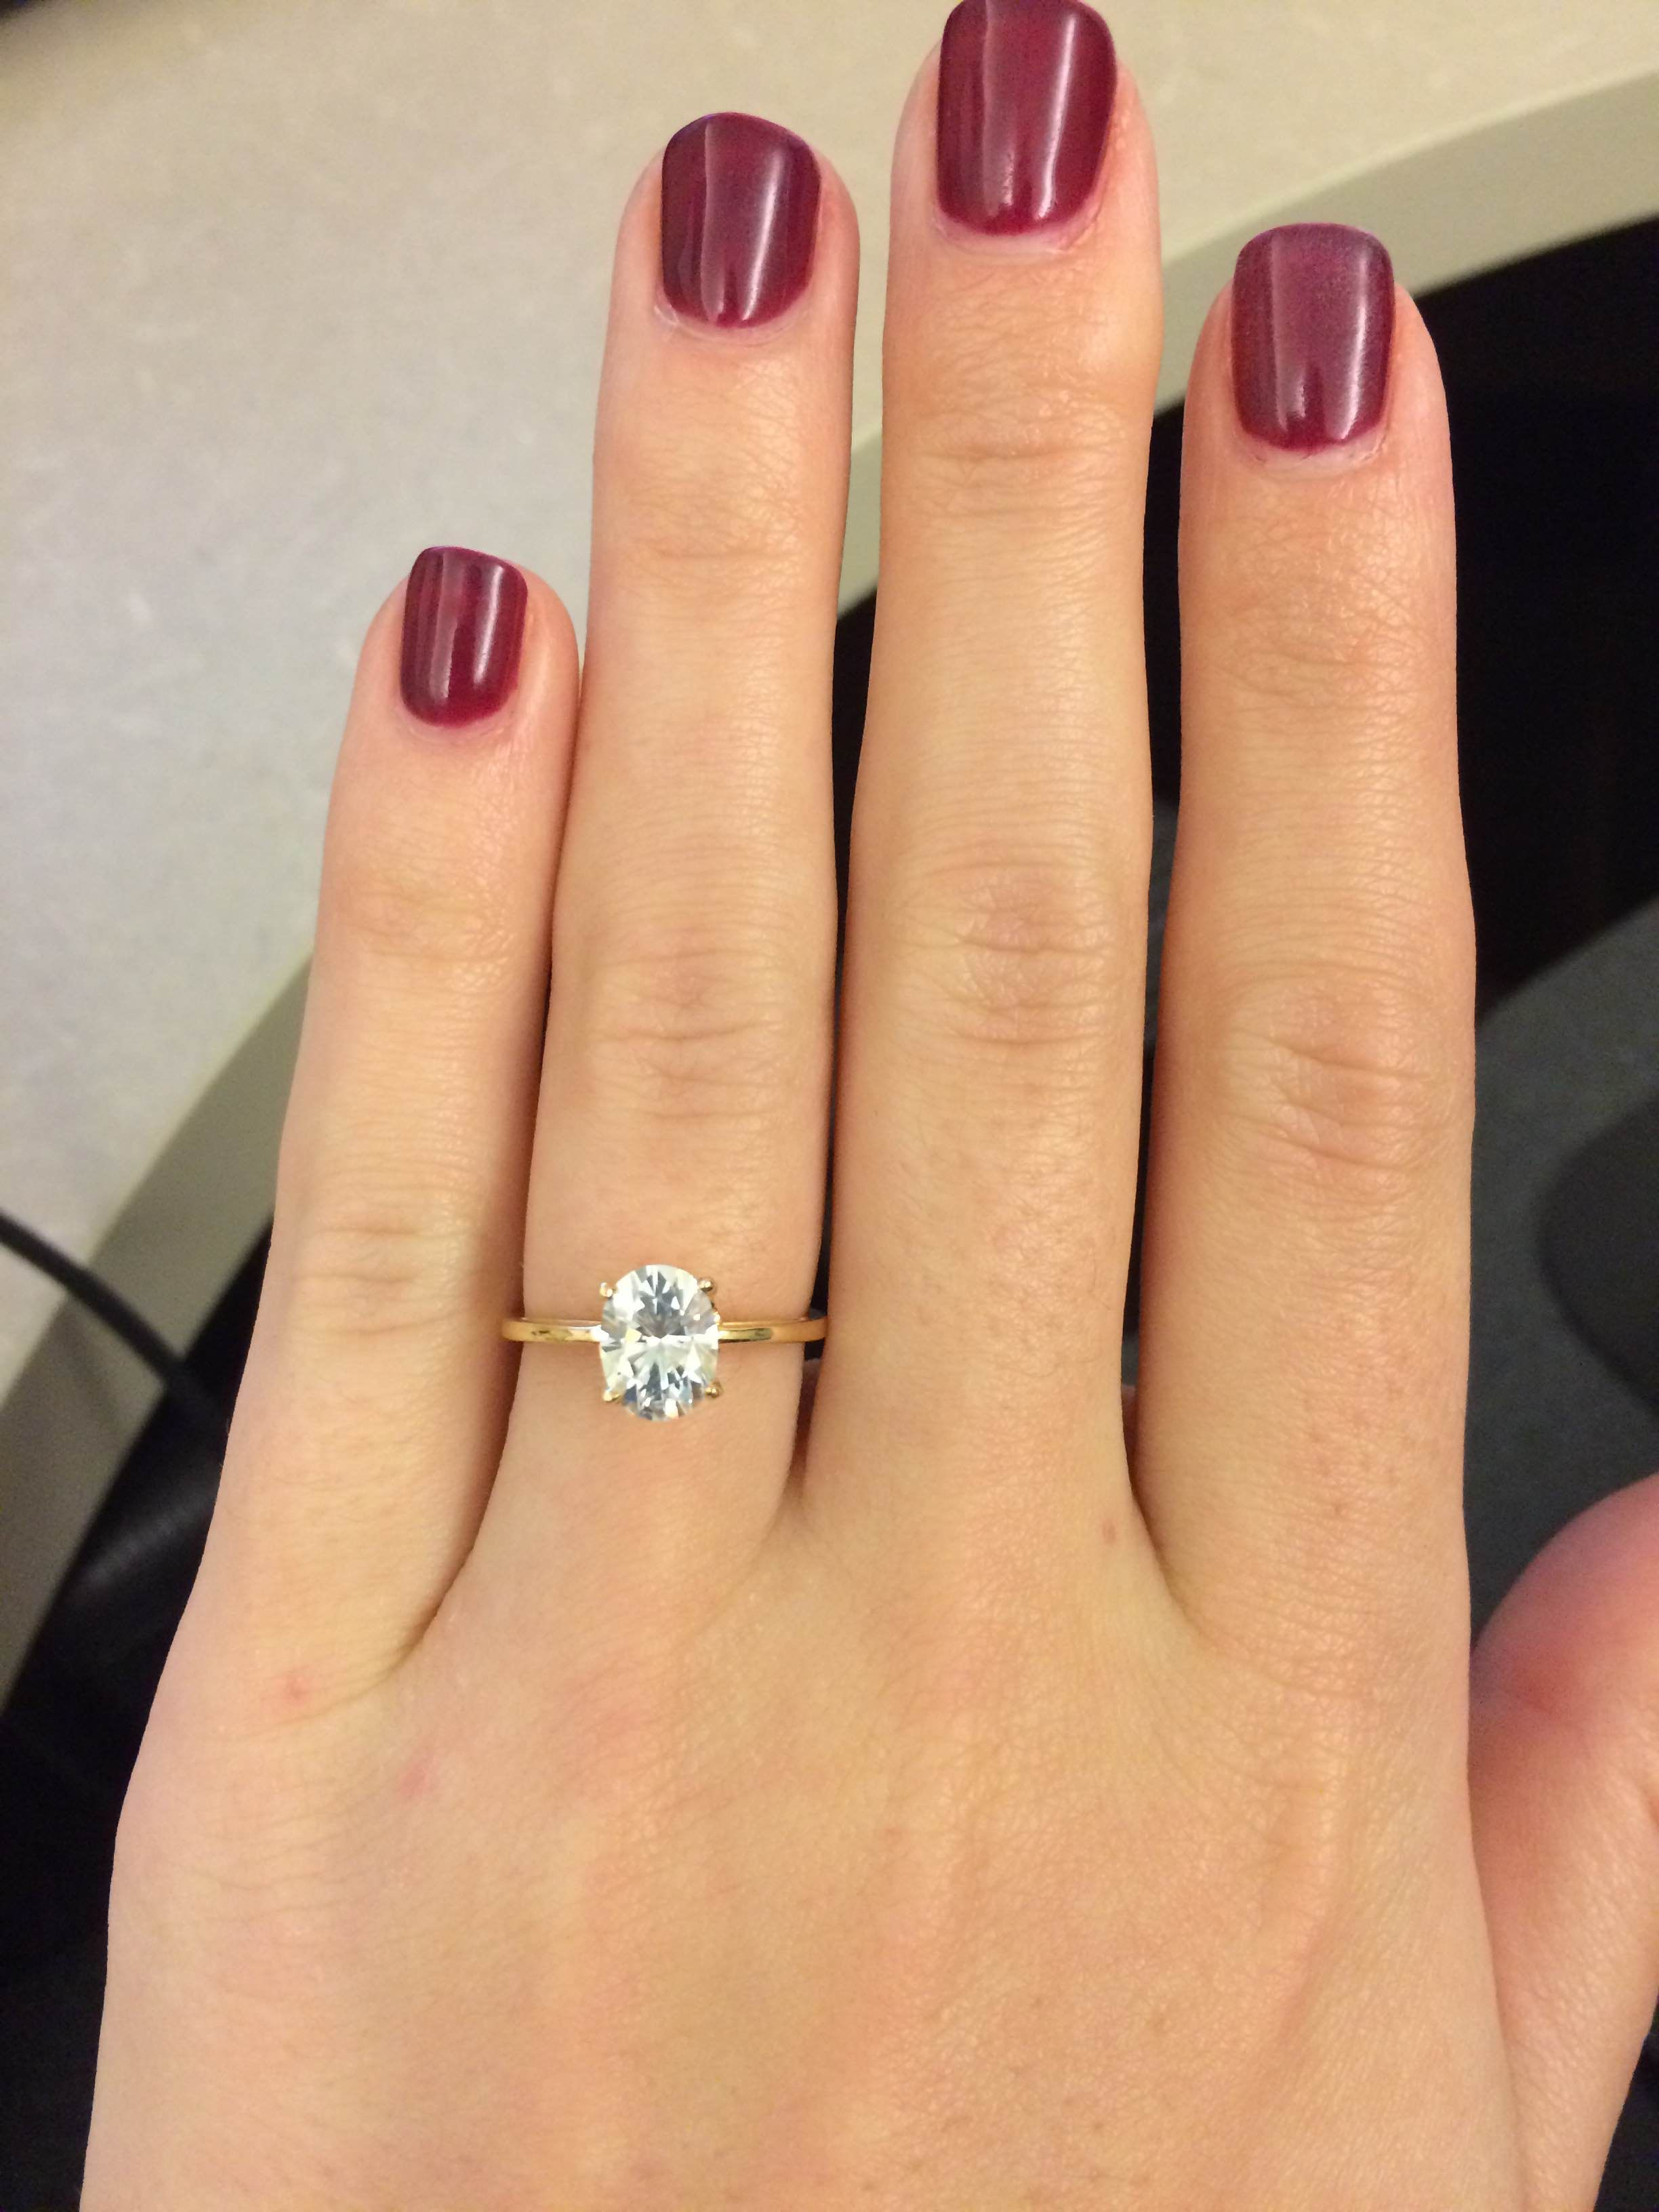 Show Me Your Oval Diamond Solitaire Weddingbee Engagement Rings Affordable Amazing Wedding Rings Engagement Rings